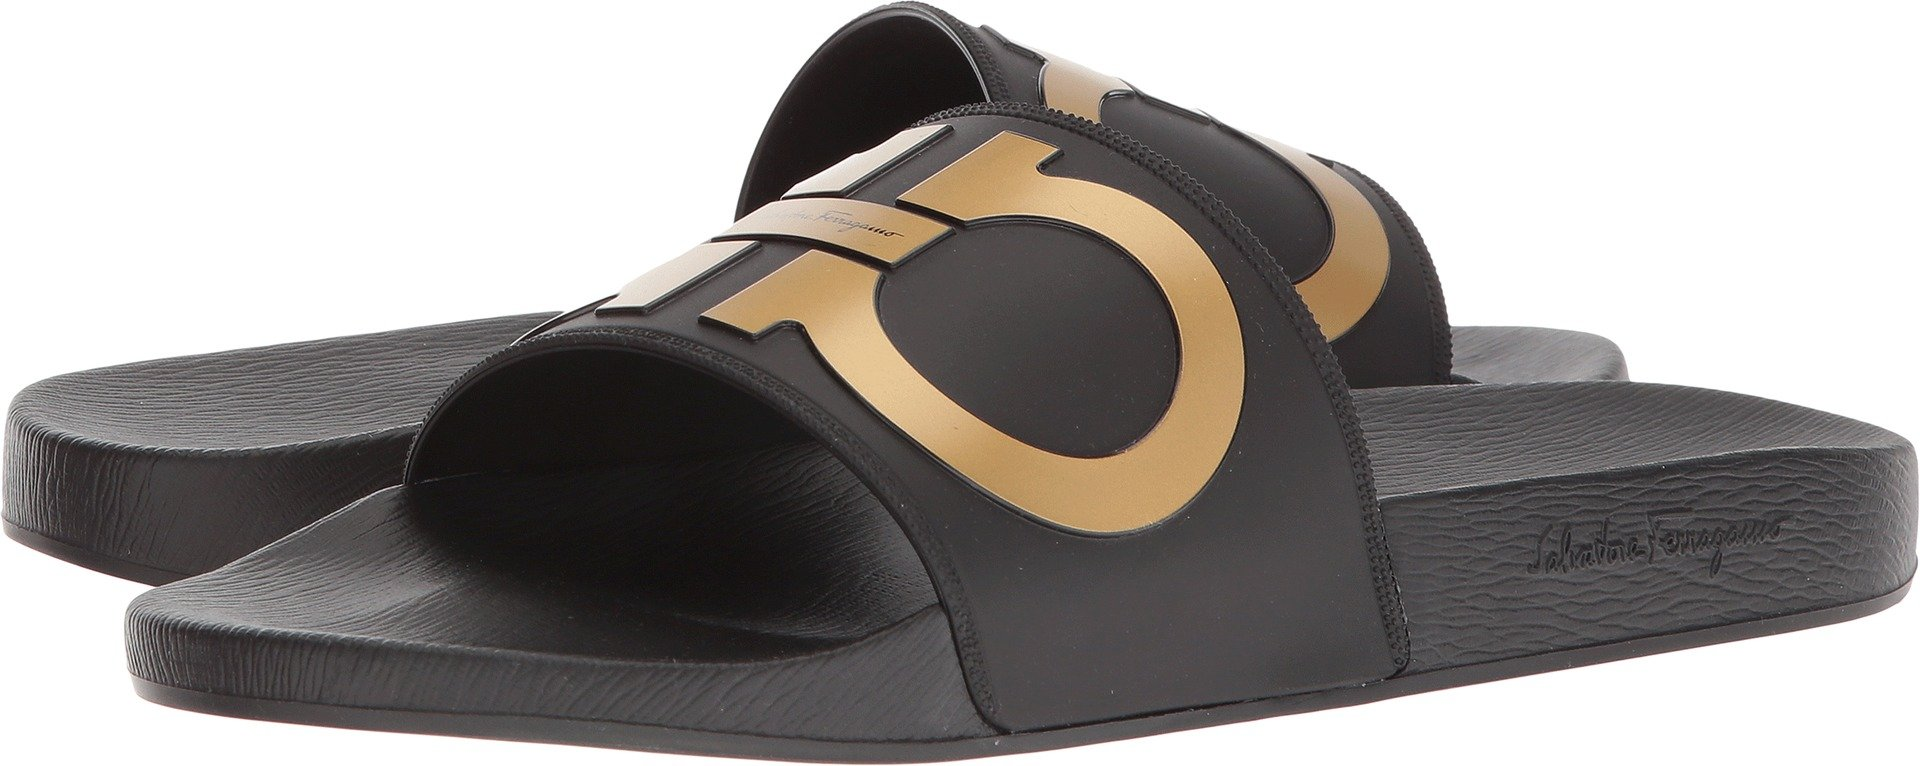 33077bf20d2 Galleon - Salvatore Ferragamo Men s Groove 2 Slides